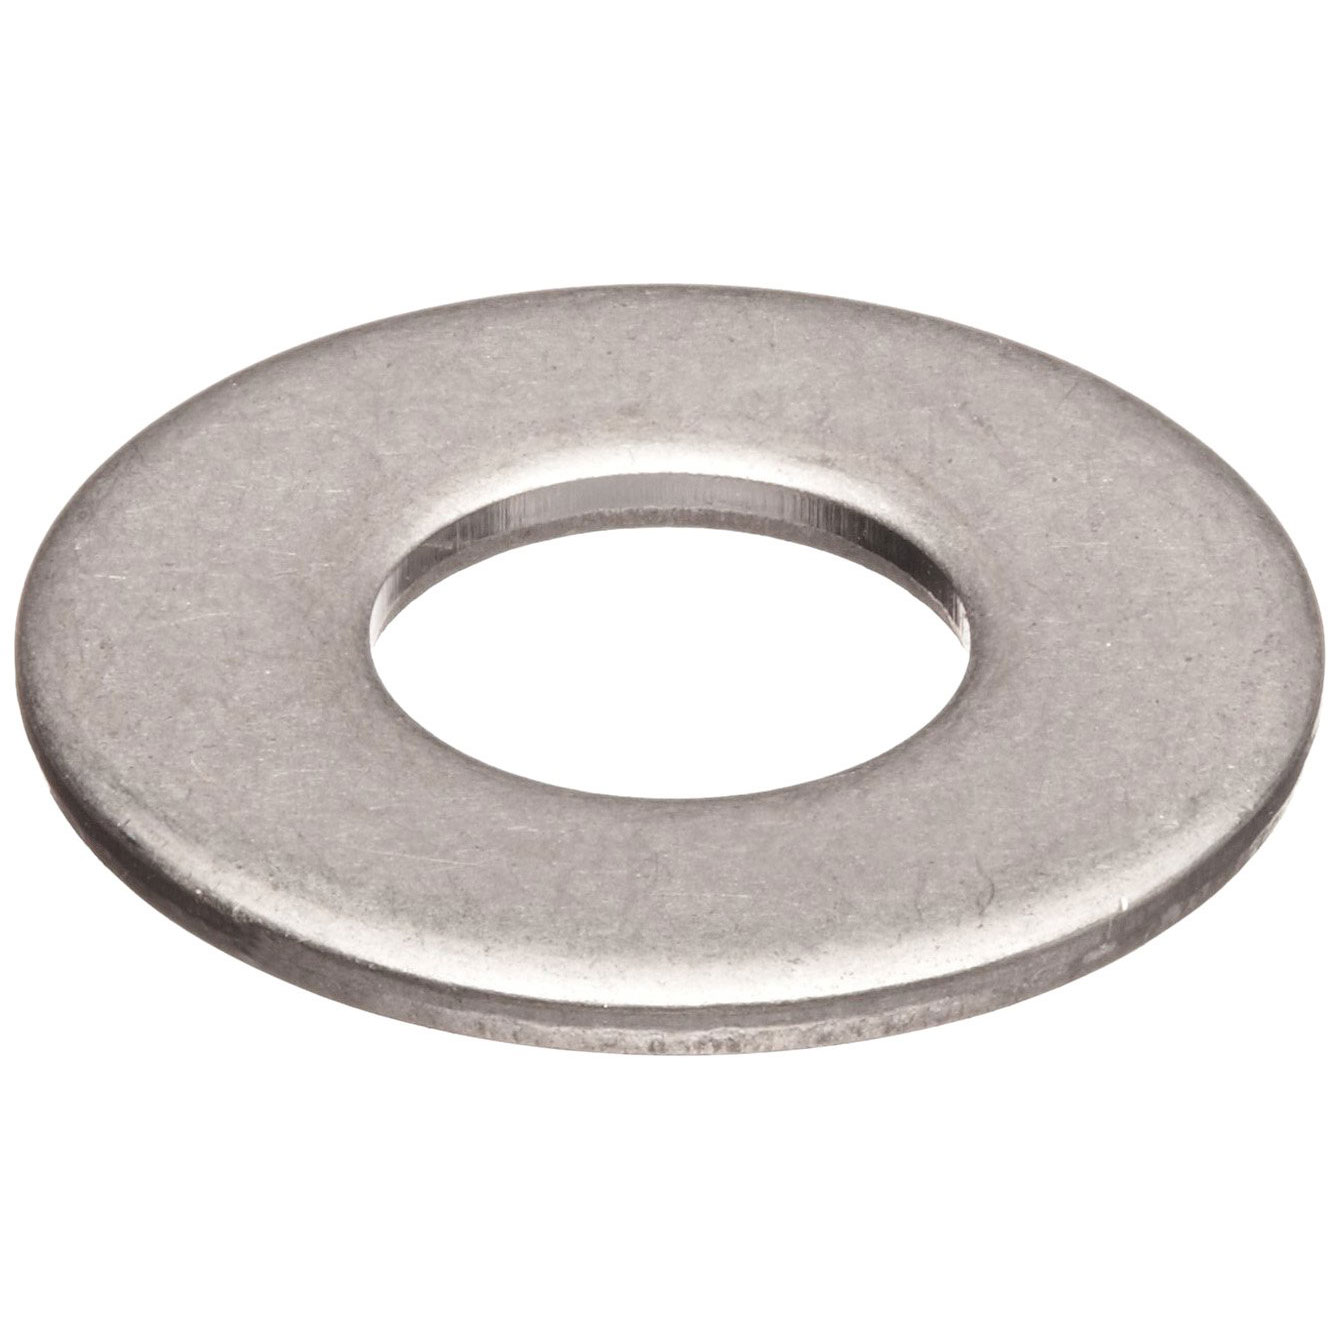 Holt a stainless steel flat washers coast water sports